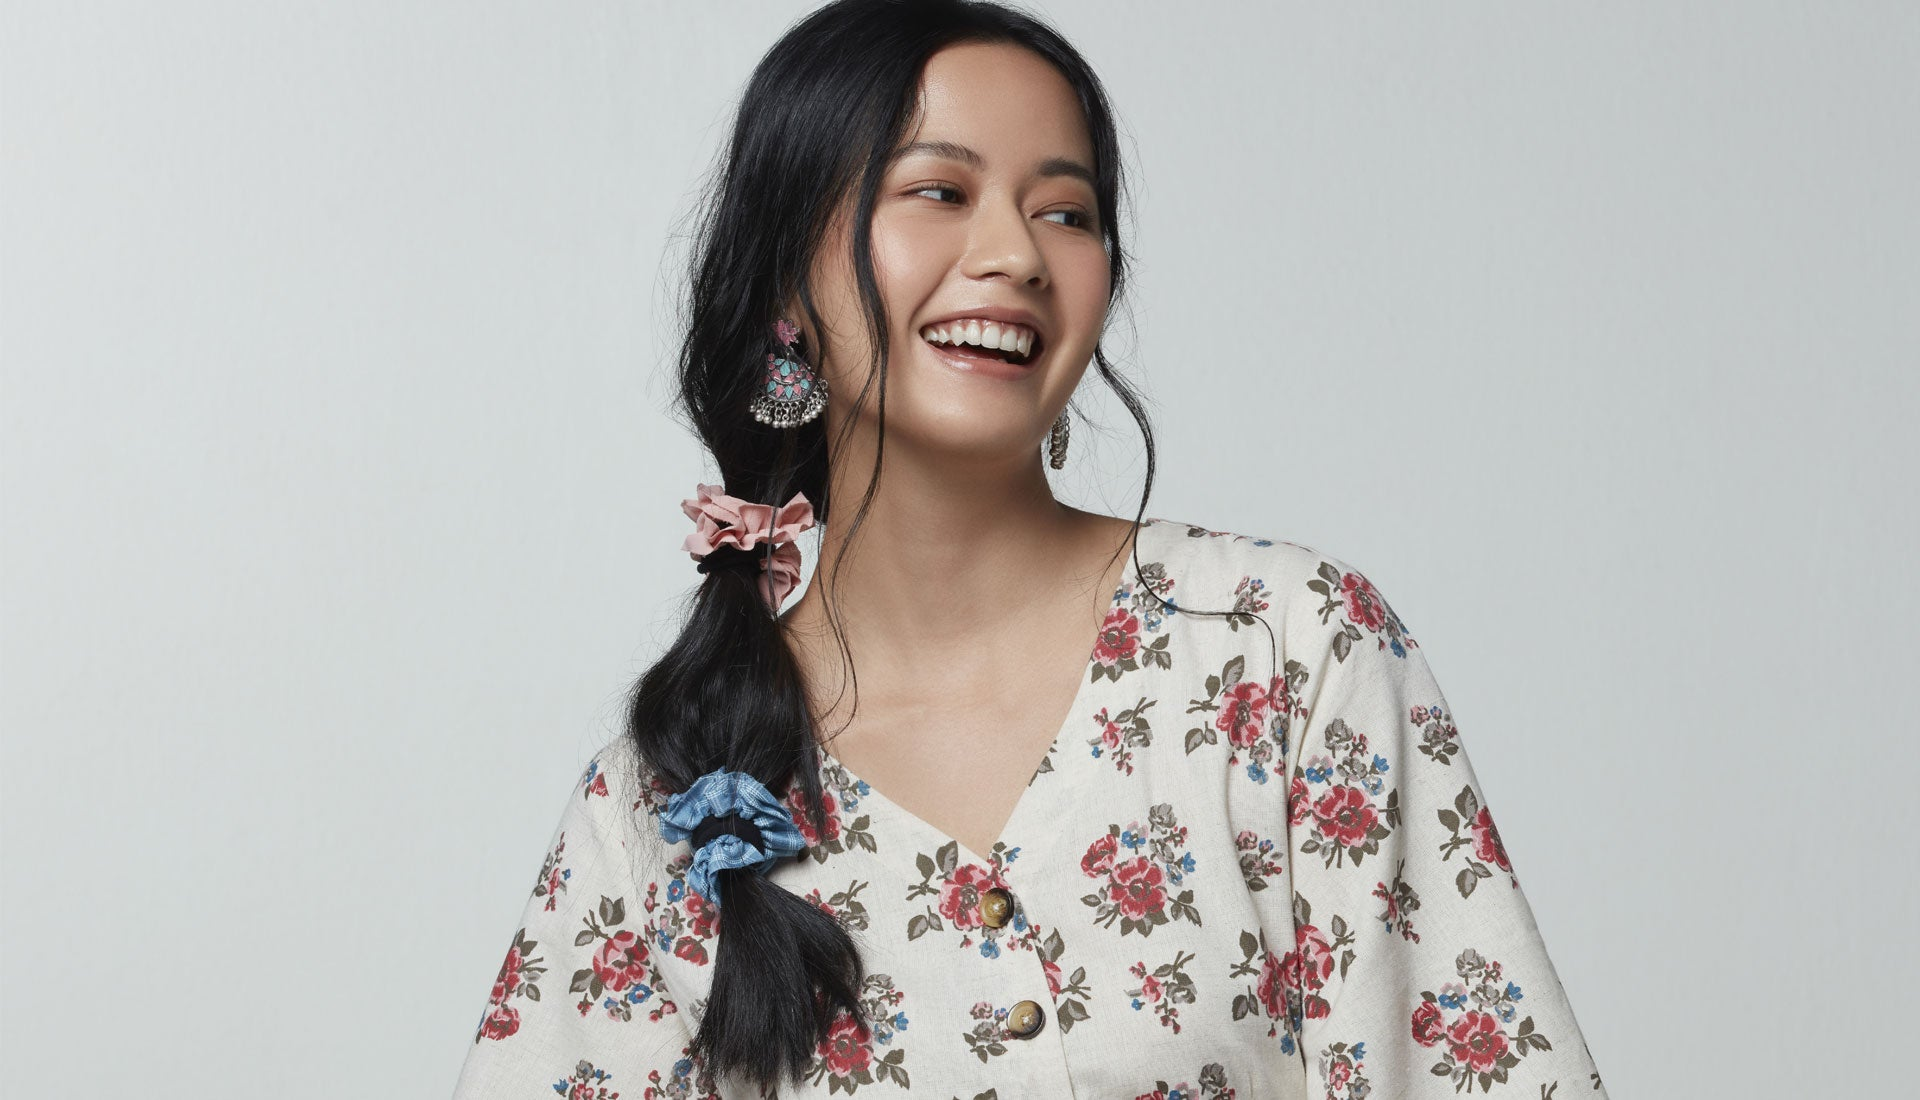 Womens Floral Dress By Bombay Paisley